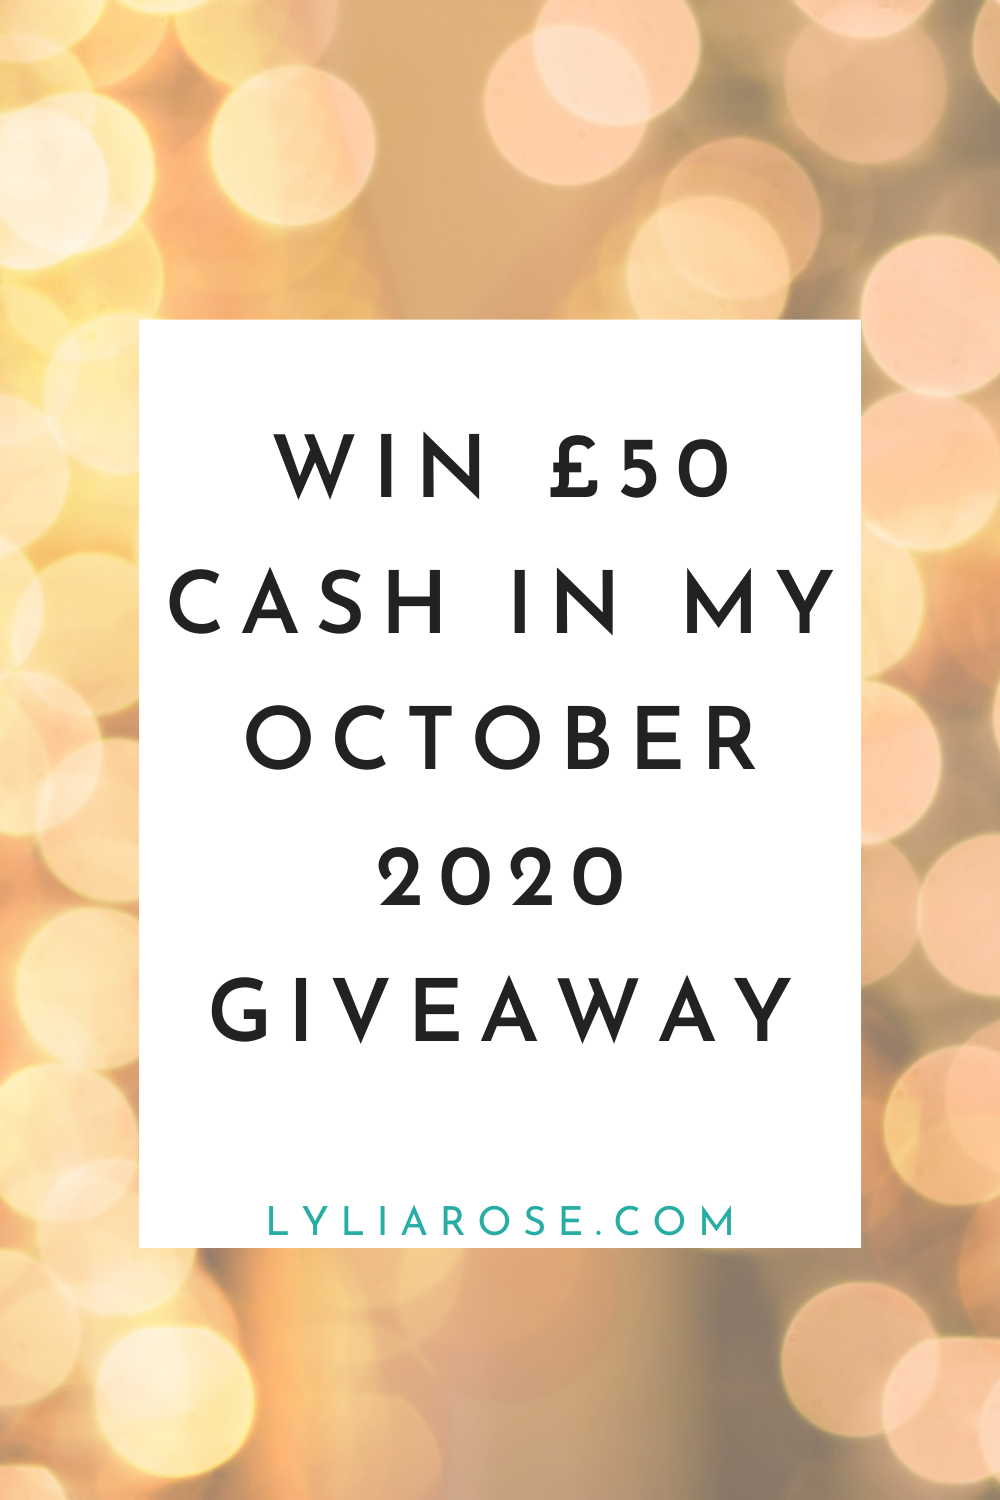 Win £50 cash in my October 2020 giveaway